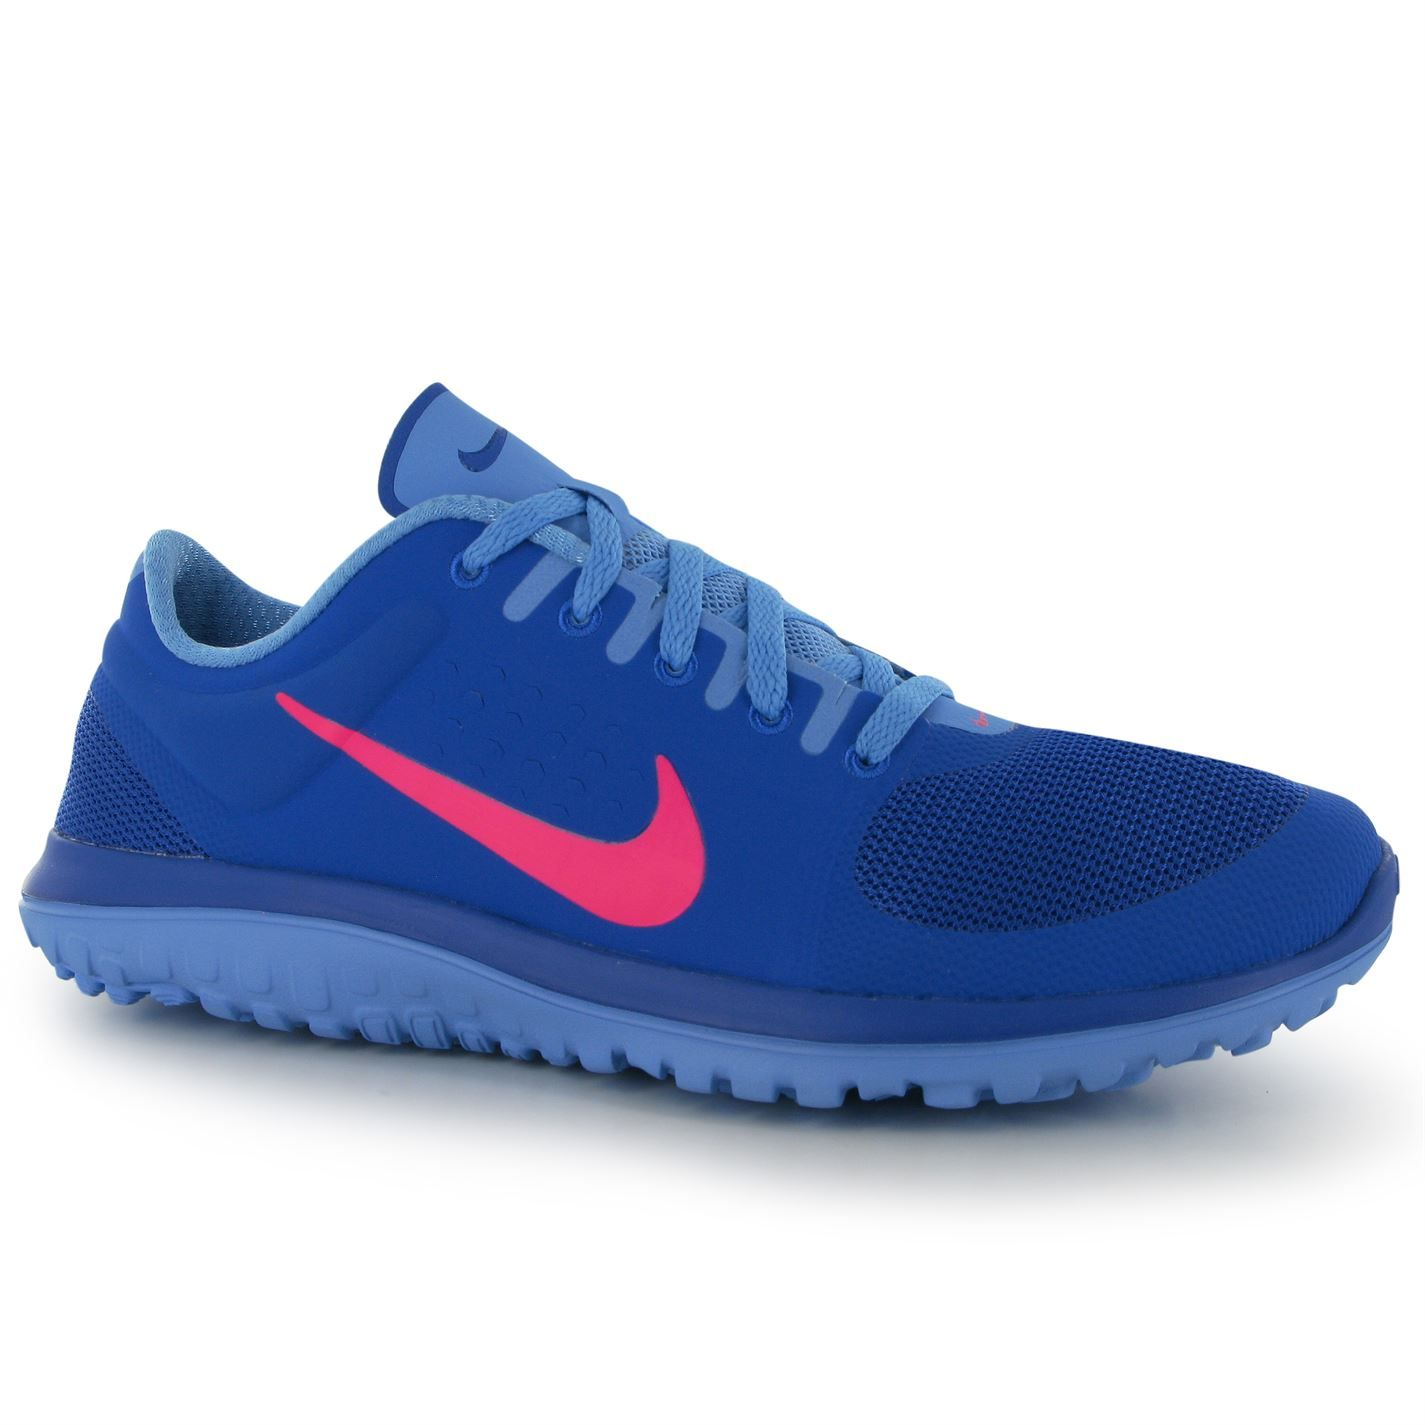 Nike Fitsole Lite Running Trainers Ladies >     > Now £46